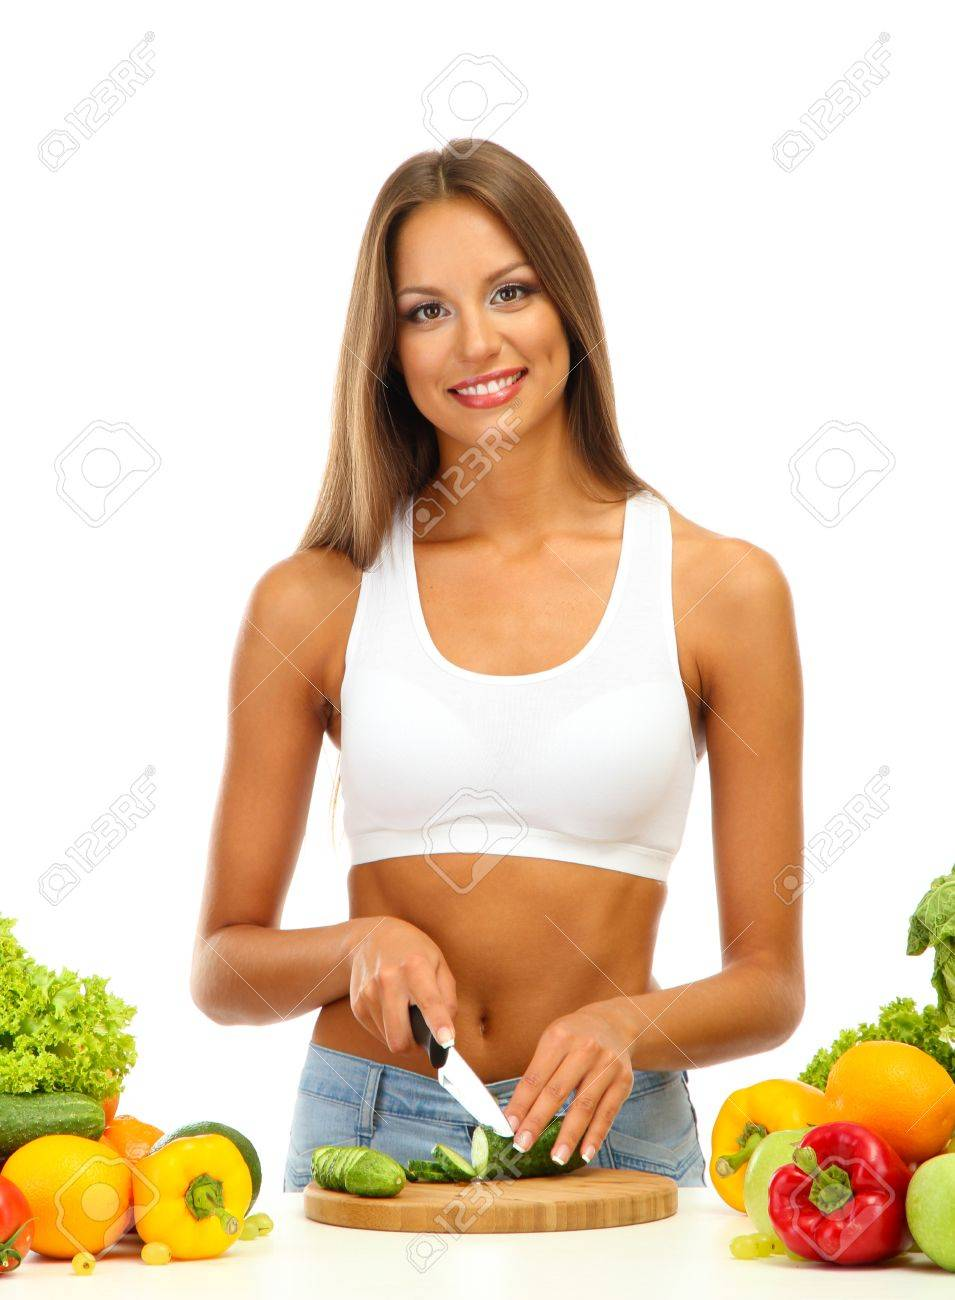 beautiful young woman cutting vegetables, isolated on white Stock Photo - 17281809